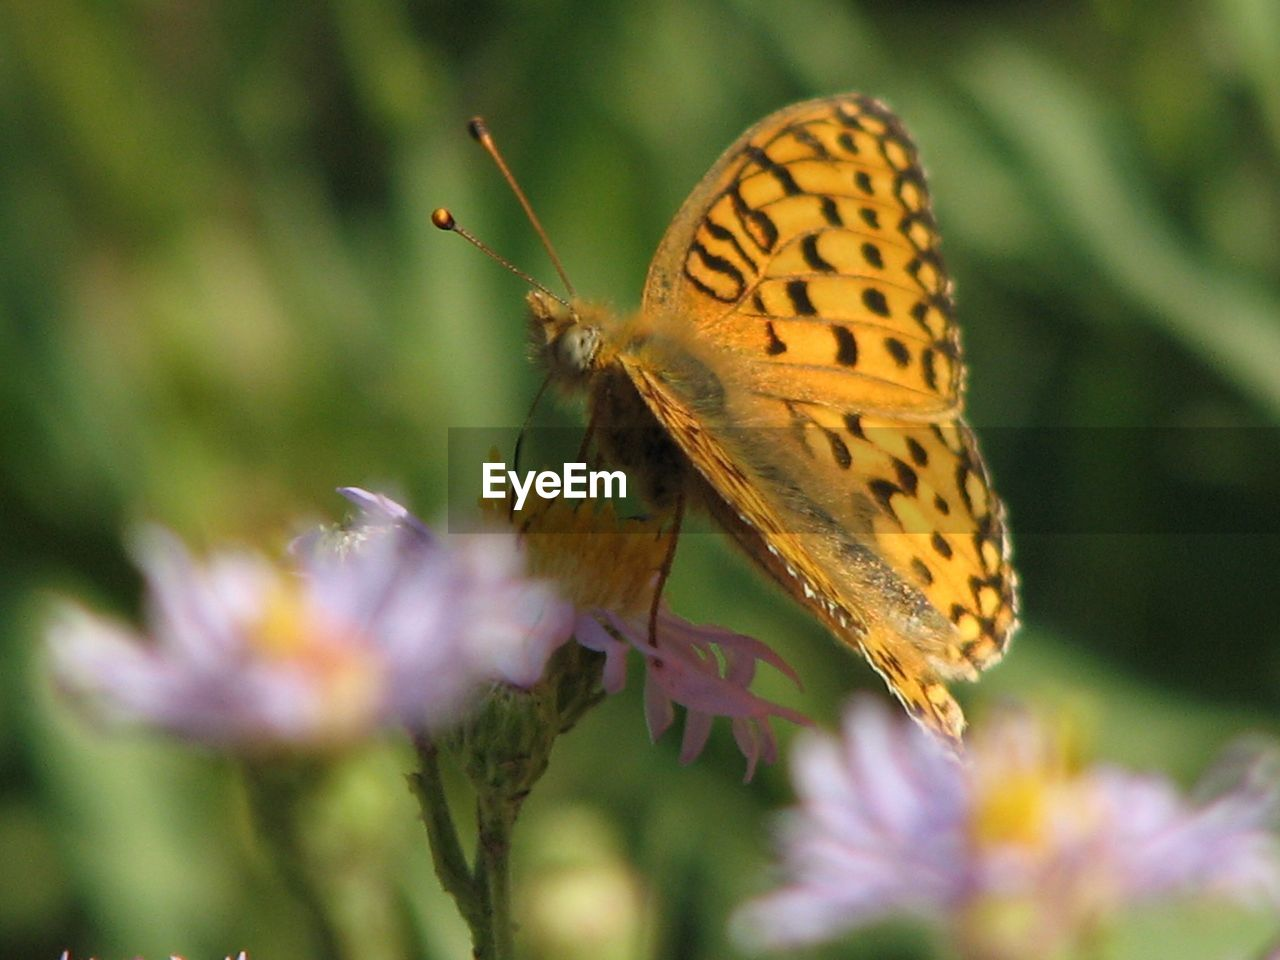 insect, one animal, animal themes, butterfly, animals in the wild, butterfly - insect, nature, no people, close-up, plant, growth, outdoors, day, flower